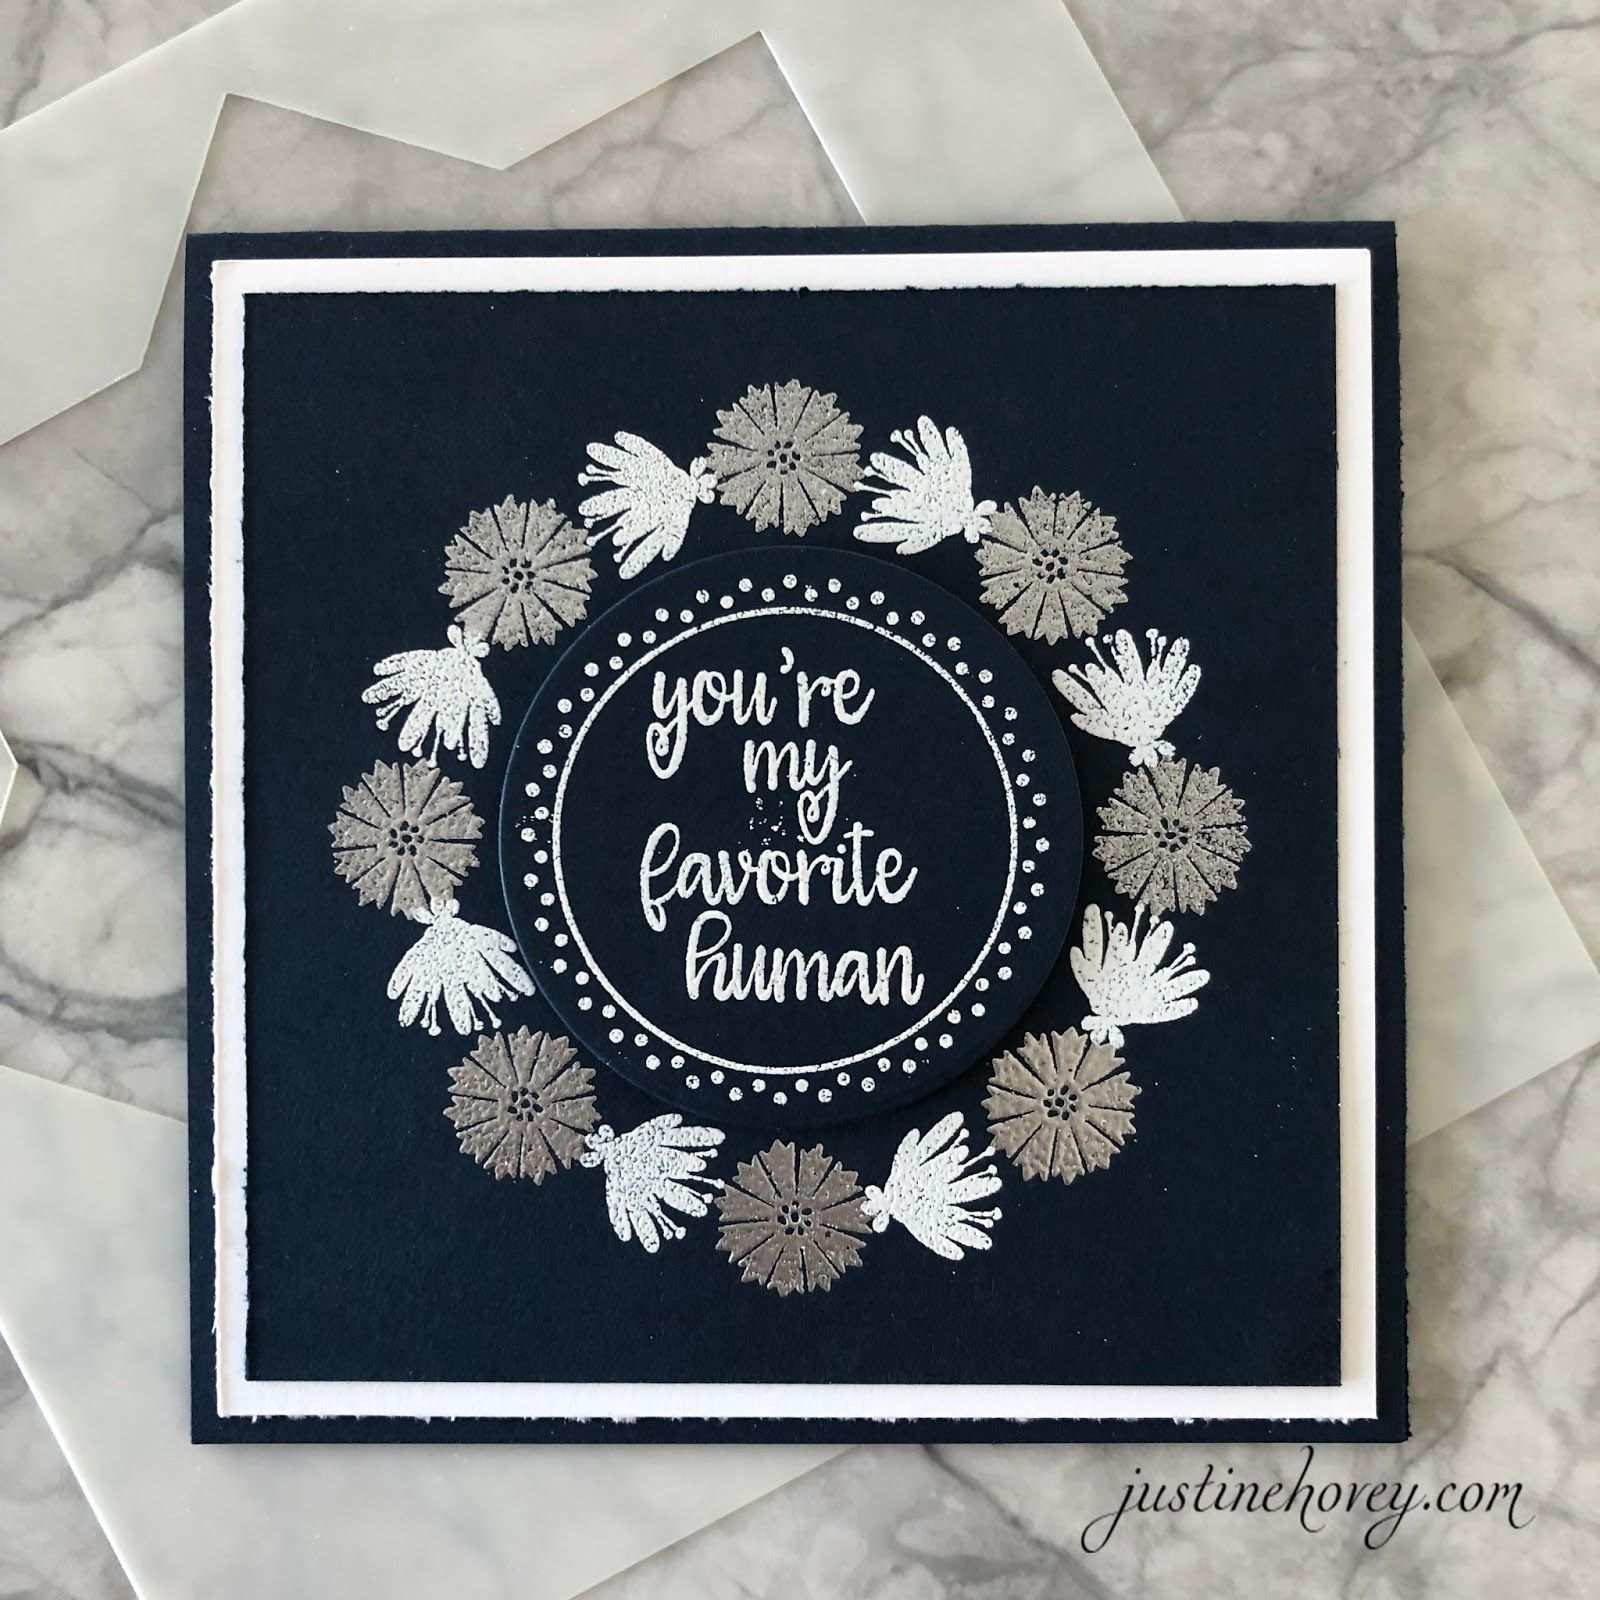 A blog about cardmaking, cardmaking tutorials and stamping ...